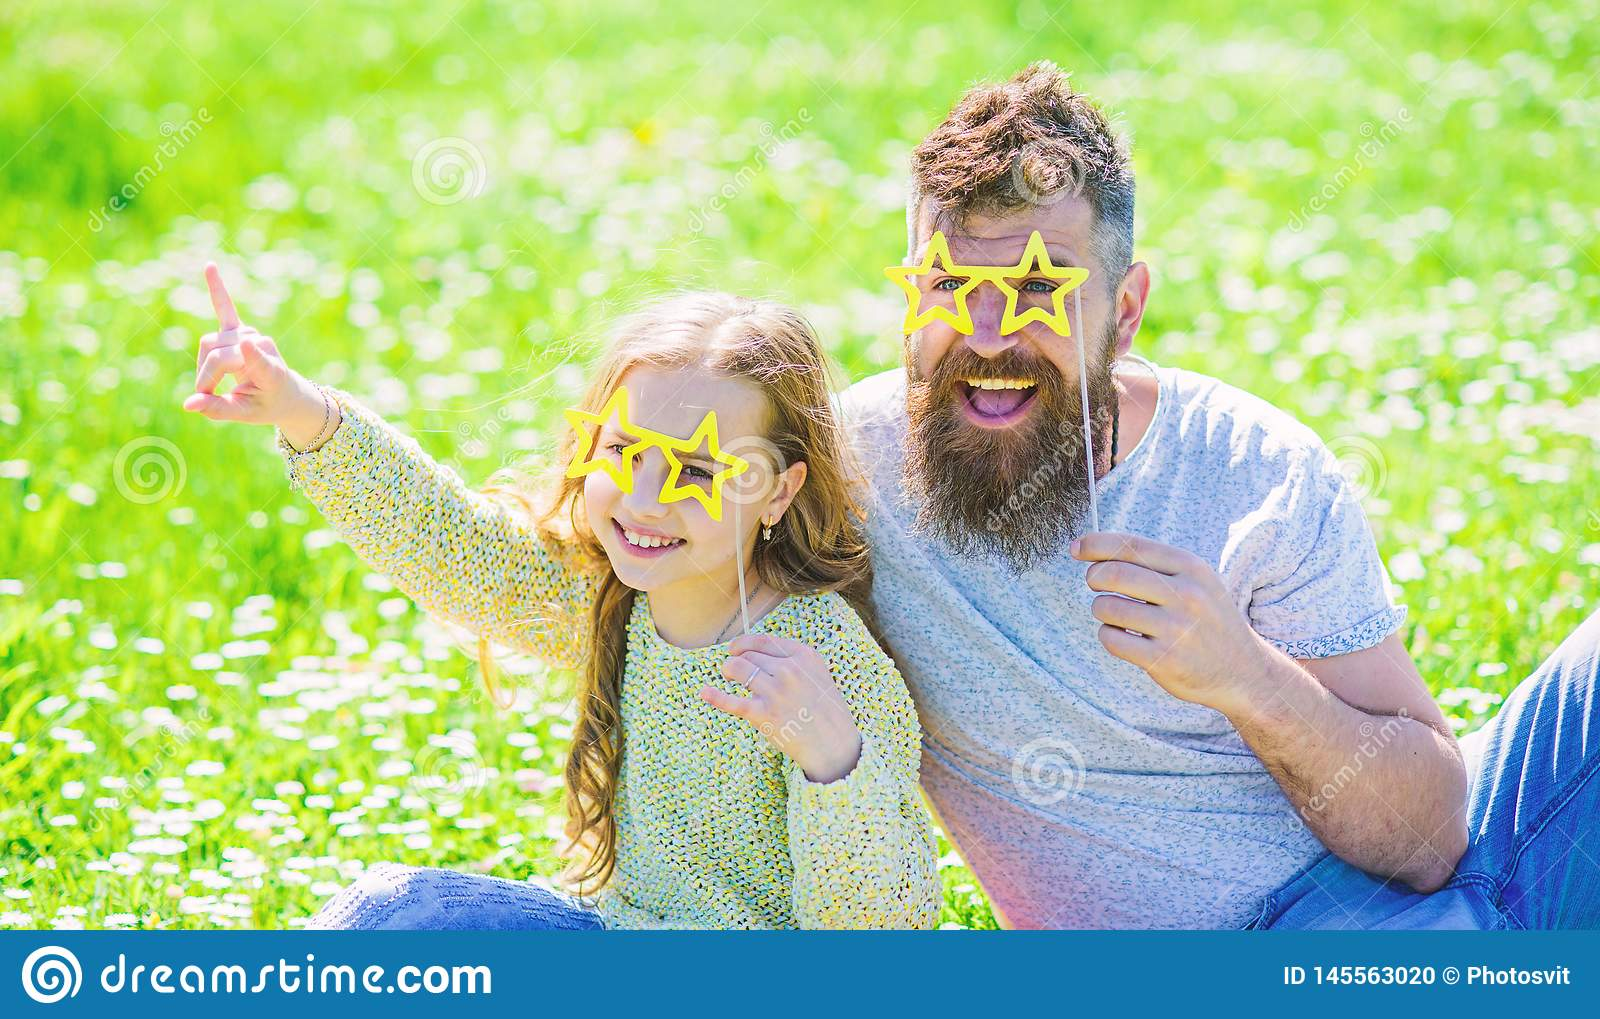 Rock star concept. Dad and daughter sits on grass at grassplot, green background. Family spend leisure outdoors. Child